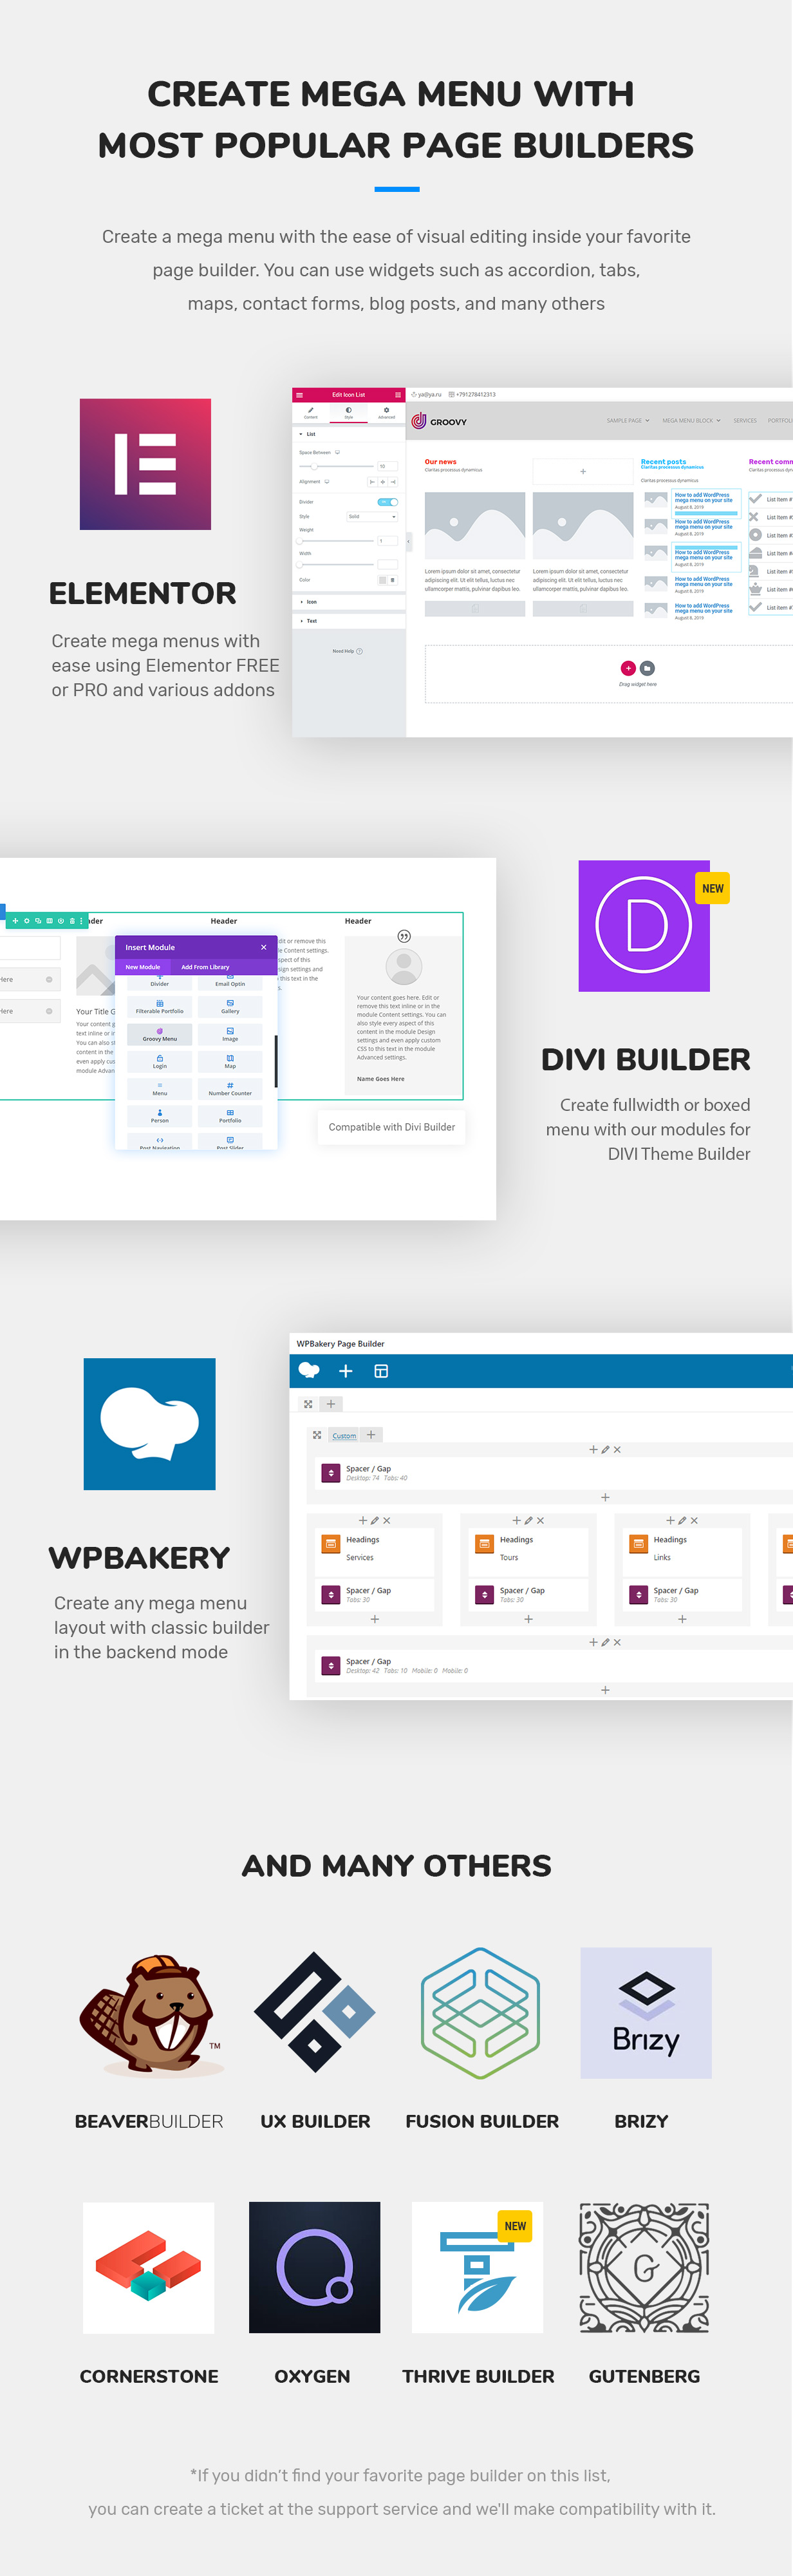 Groovy mega menu compatible page builders is a DIVI theme,  Elementor Free and PRO, WPBakery, Brizy, Oxygen, Theme Fusion, Gutenberg, Beaver Builder, UX Builder by Flatsome, Cornerstone, Thrive Themes Builder 2021